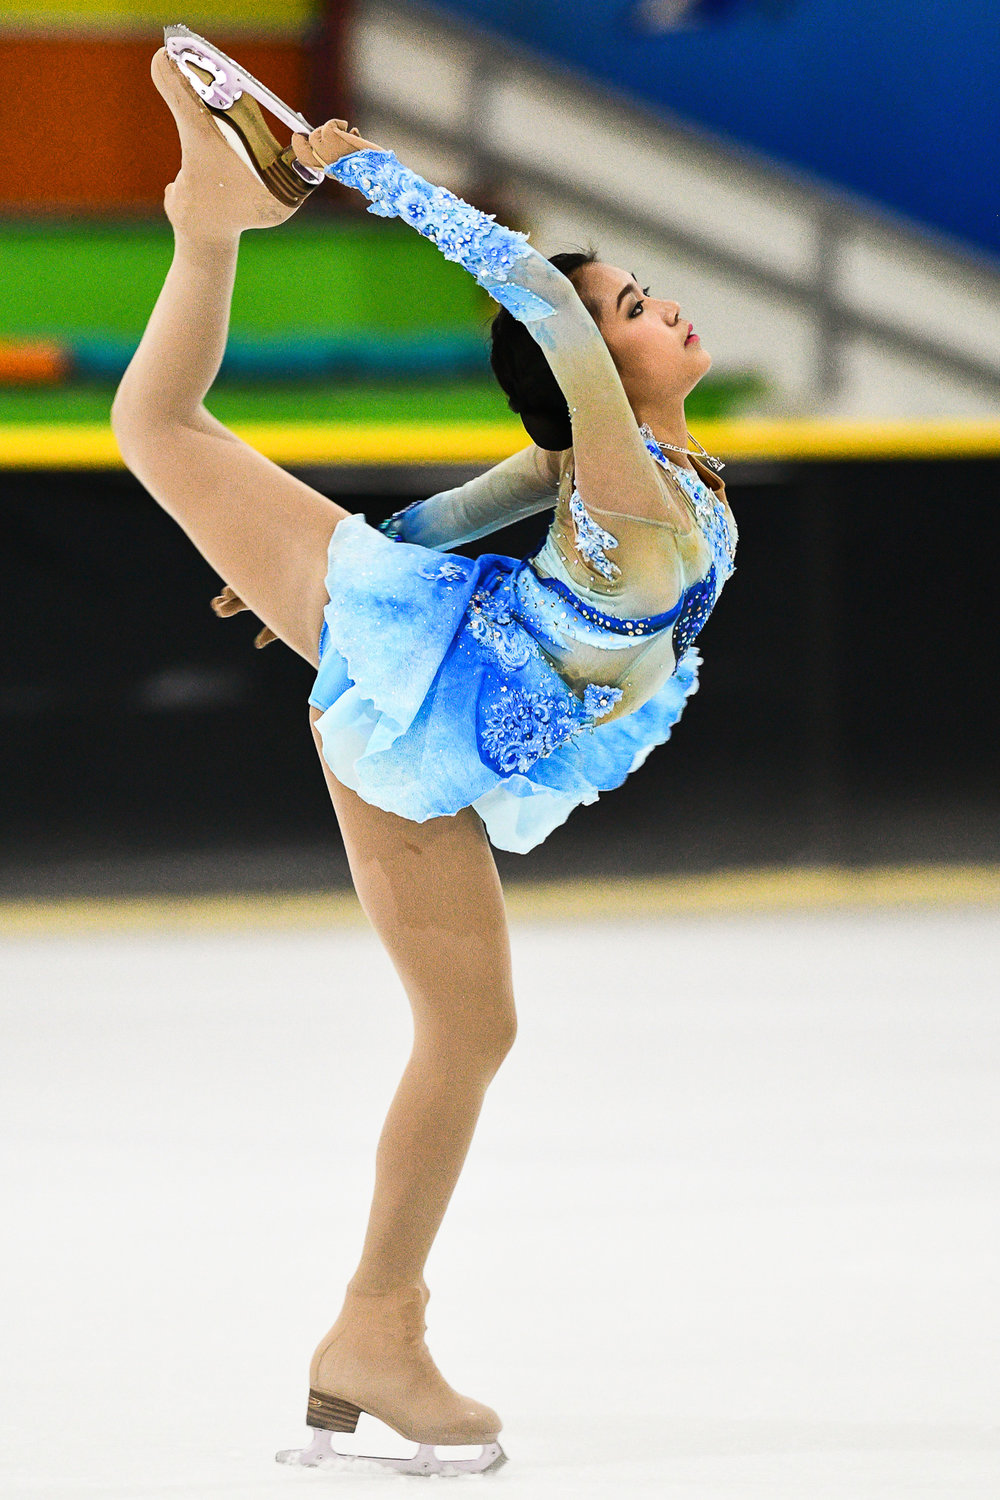 BANGKOK, THAILAND - MARCH 17: Promsan Rattanadilok Na Phuket of Thailand scored a 44.37 for her short program during the 33rd National Youth Games Figure Skating (Chumphon Ranong Games) on March 17, 2017 at Imperial World Samrong Ice Skating, Bangkok, Thailand. (Photo by: Naratip Srisupab/Thailand Photo SEALs Sports Photography)